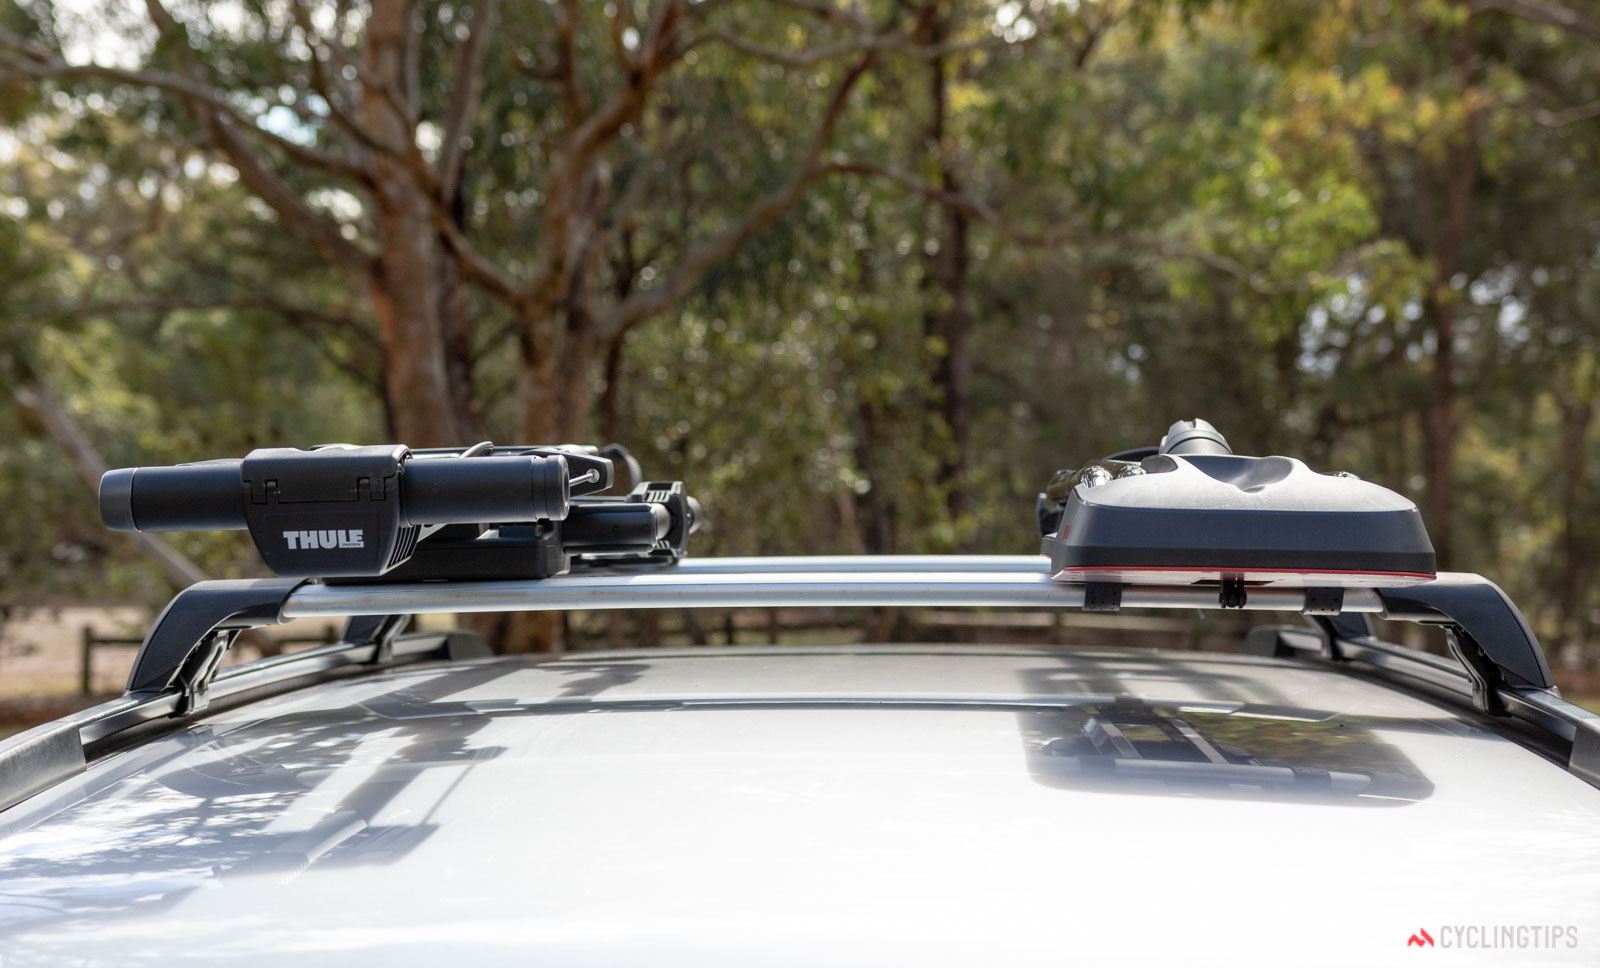 akima HighRoad versus Thule UpRide bike carrier review front on perspective